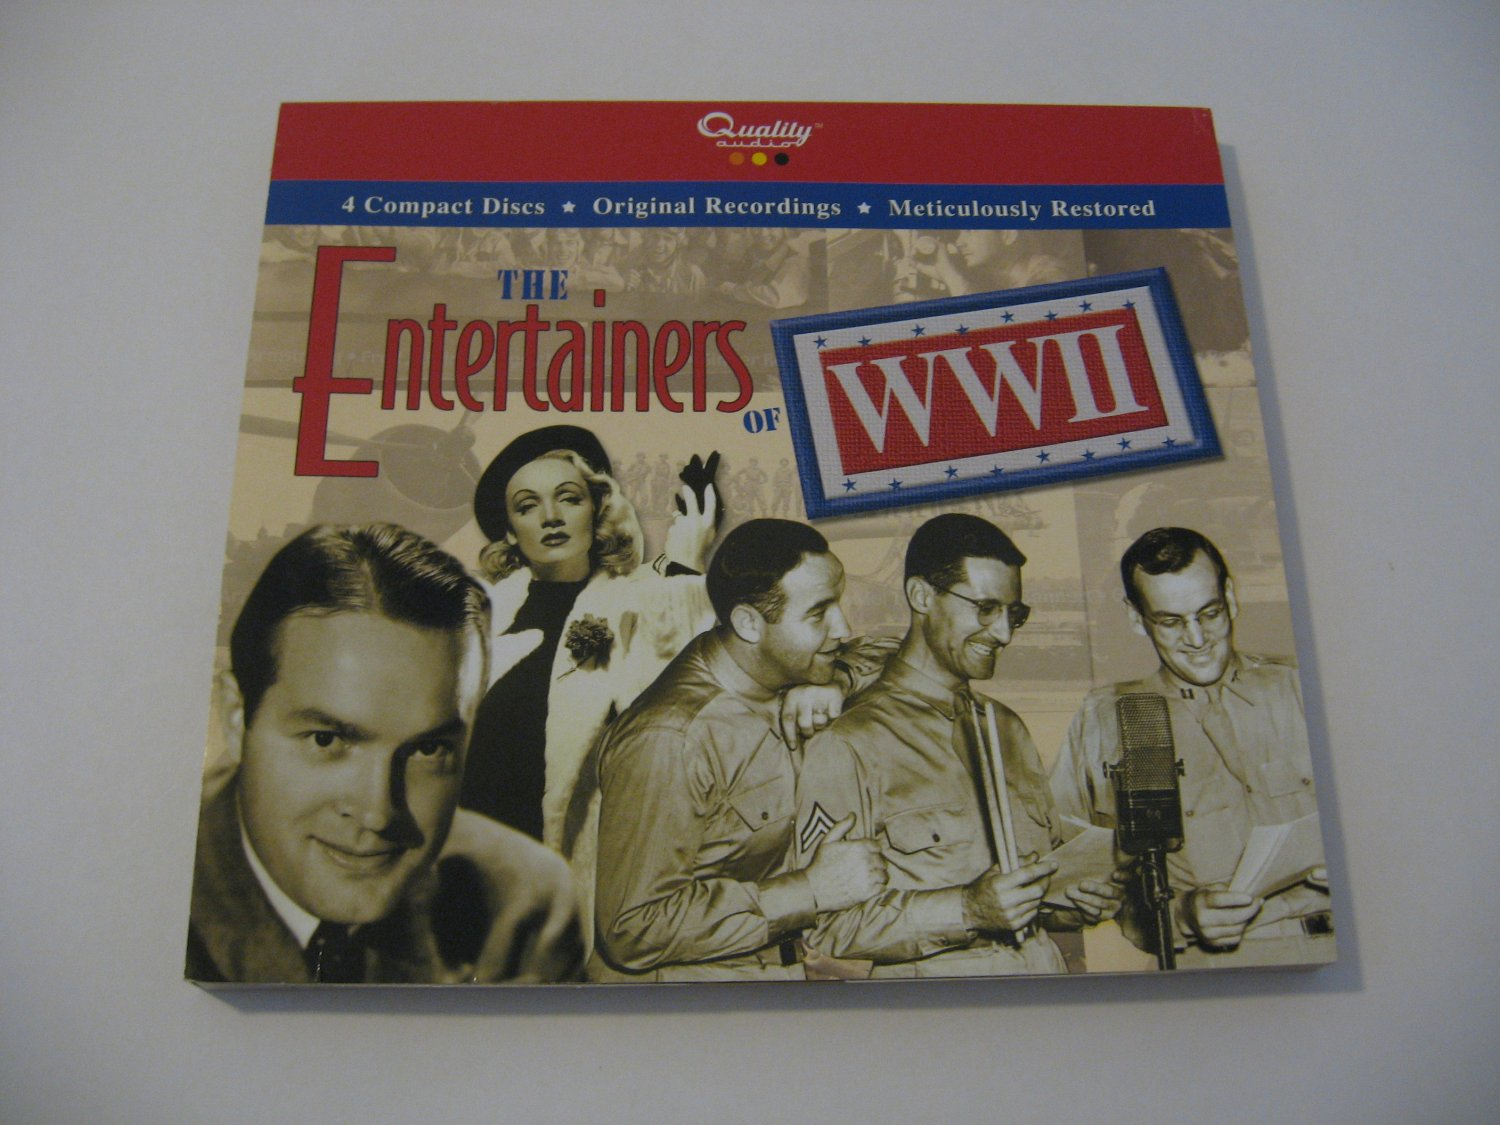 Bob Hope & Others - The Entertainers Of WW11 - 2004 (CD)